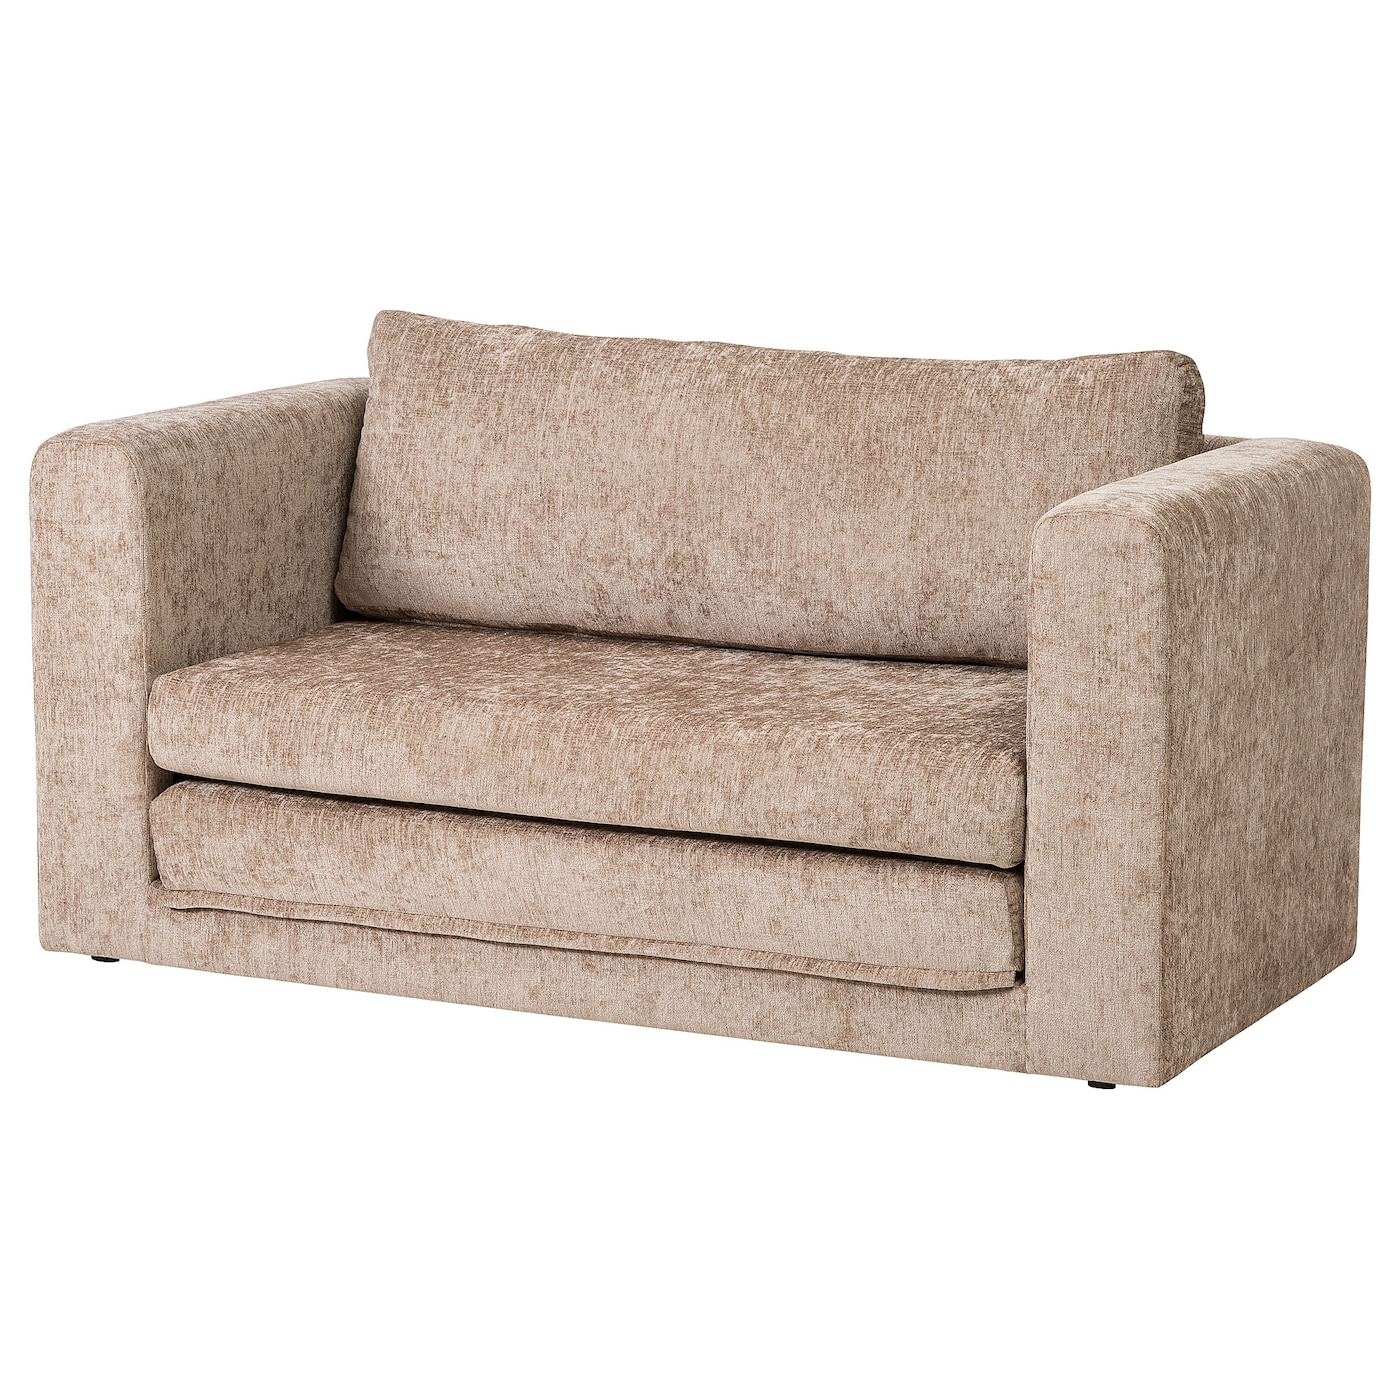 Askeby Beige 2 Seat Sofa Bed Ikea